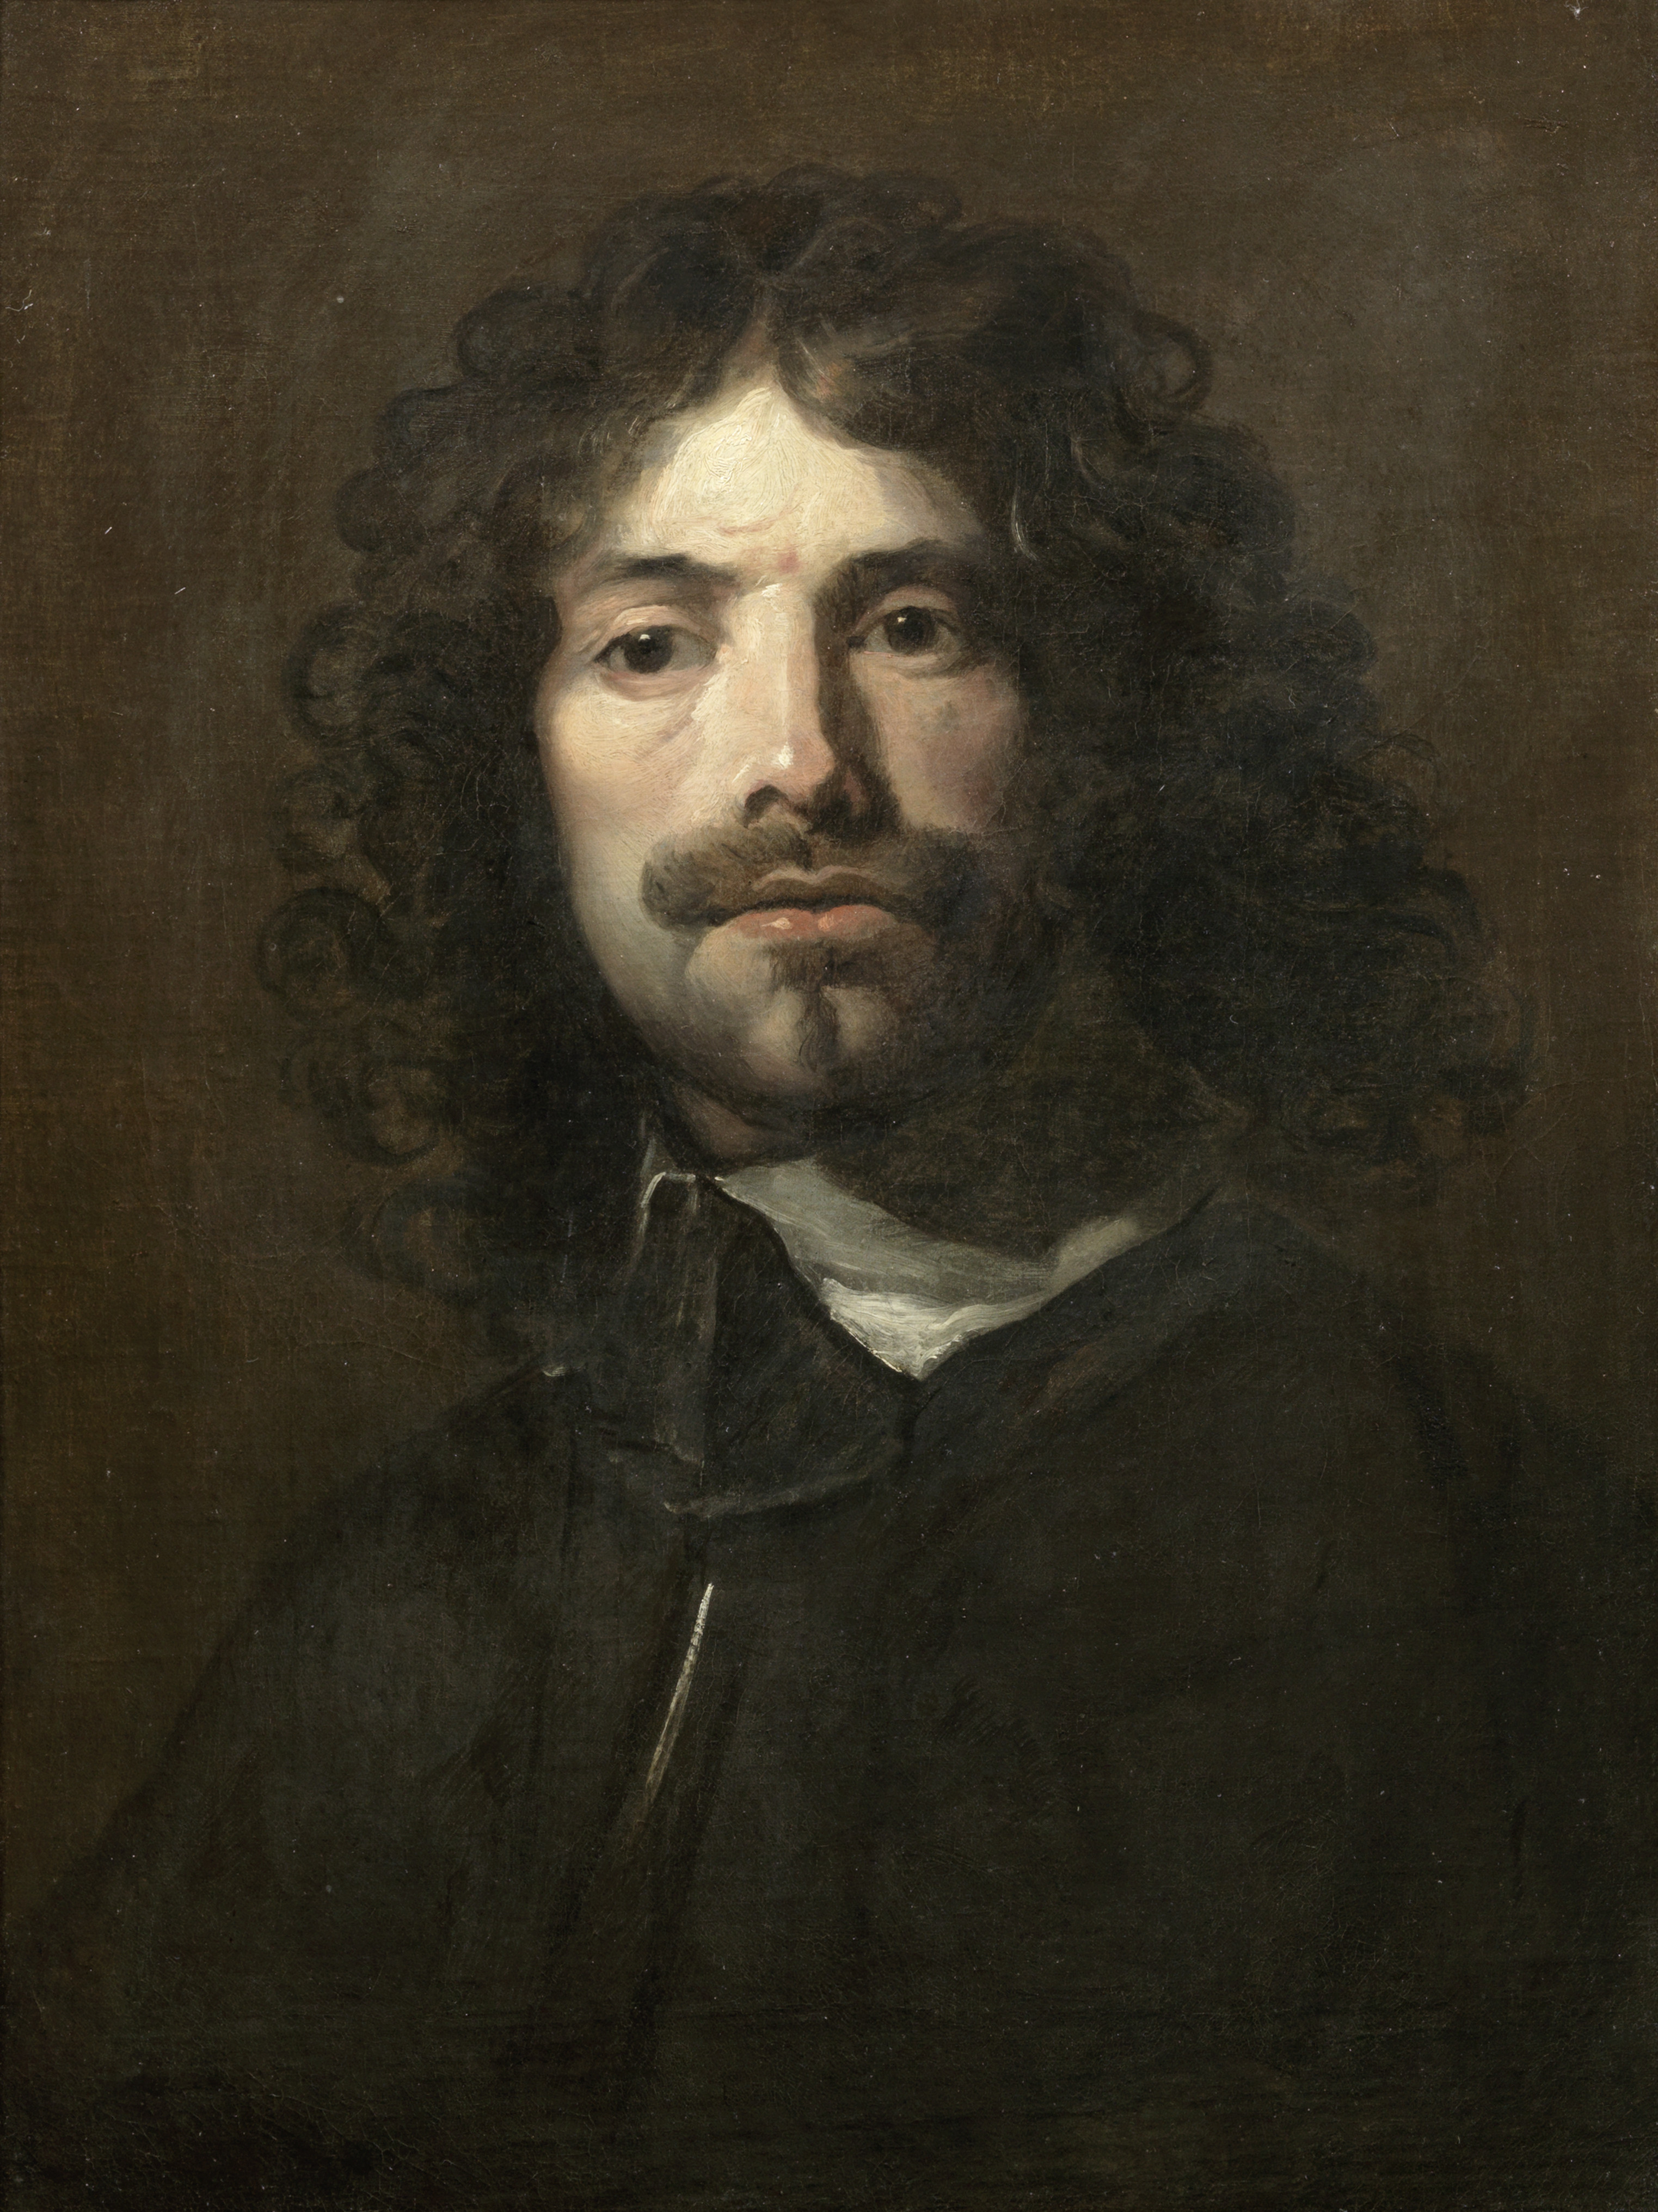 Self-portrait by William Dobson